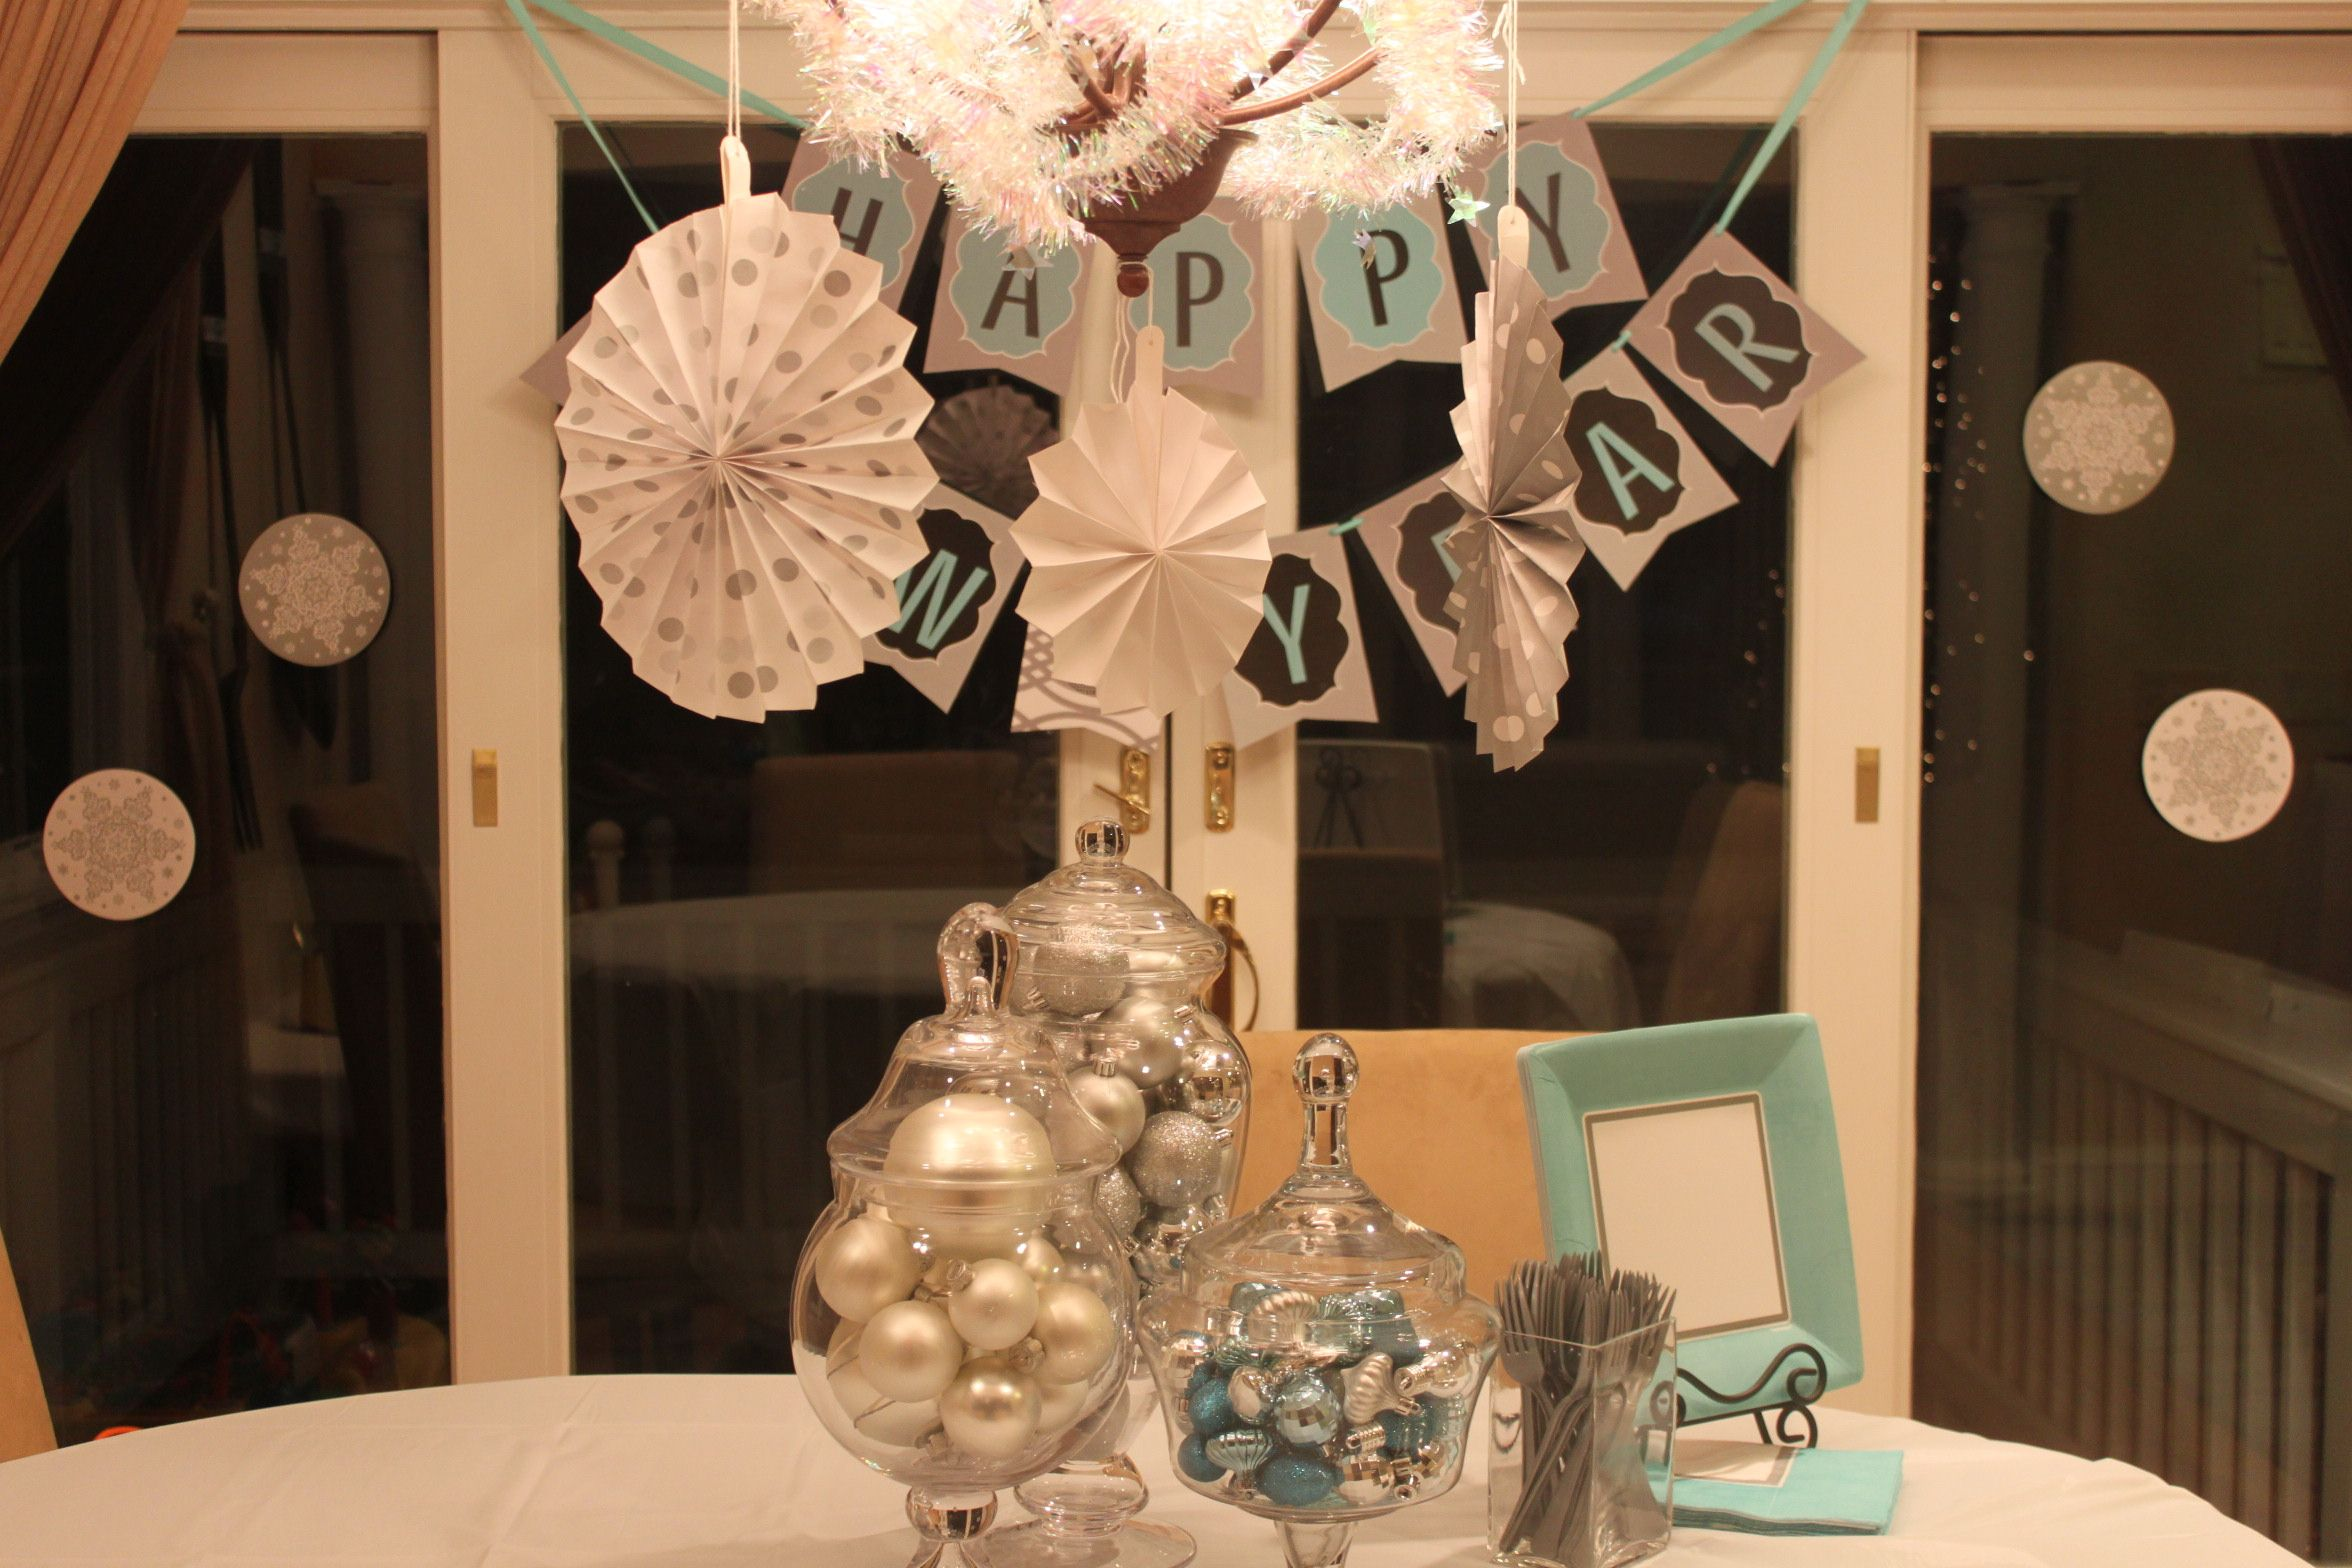 New Year S Eve Party Decoration Craft Ideas For Kids Newyear Partydecorations New Years Eve Decorations Diy New Year S Eve New Years Decorations